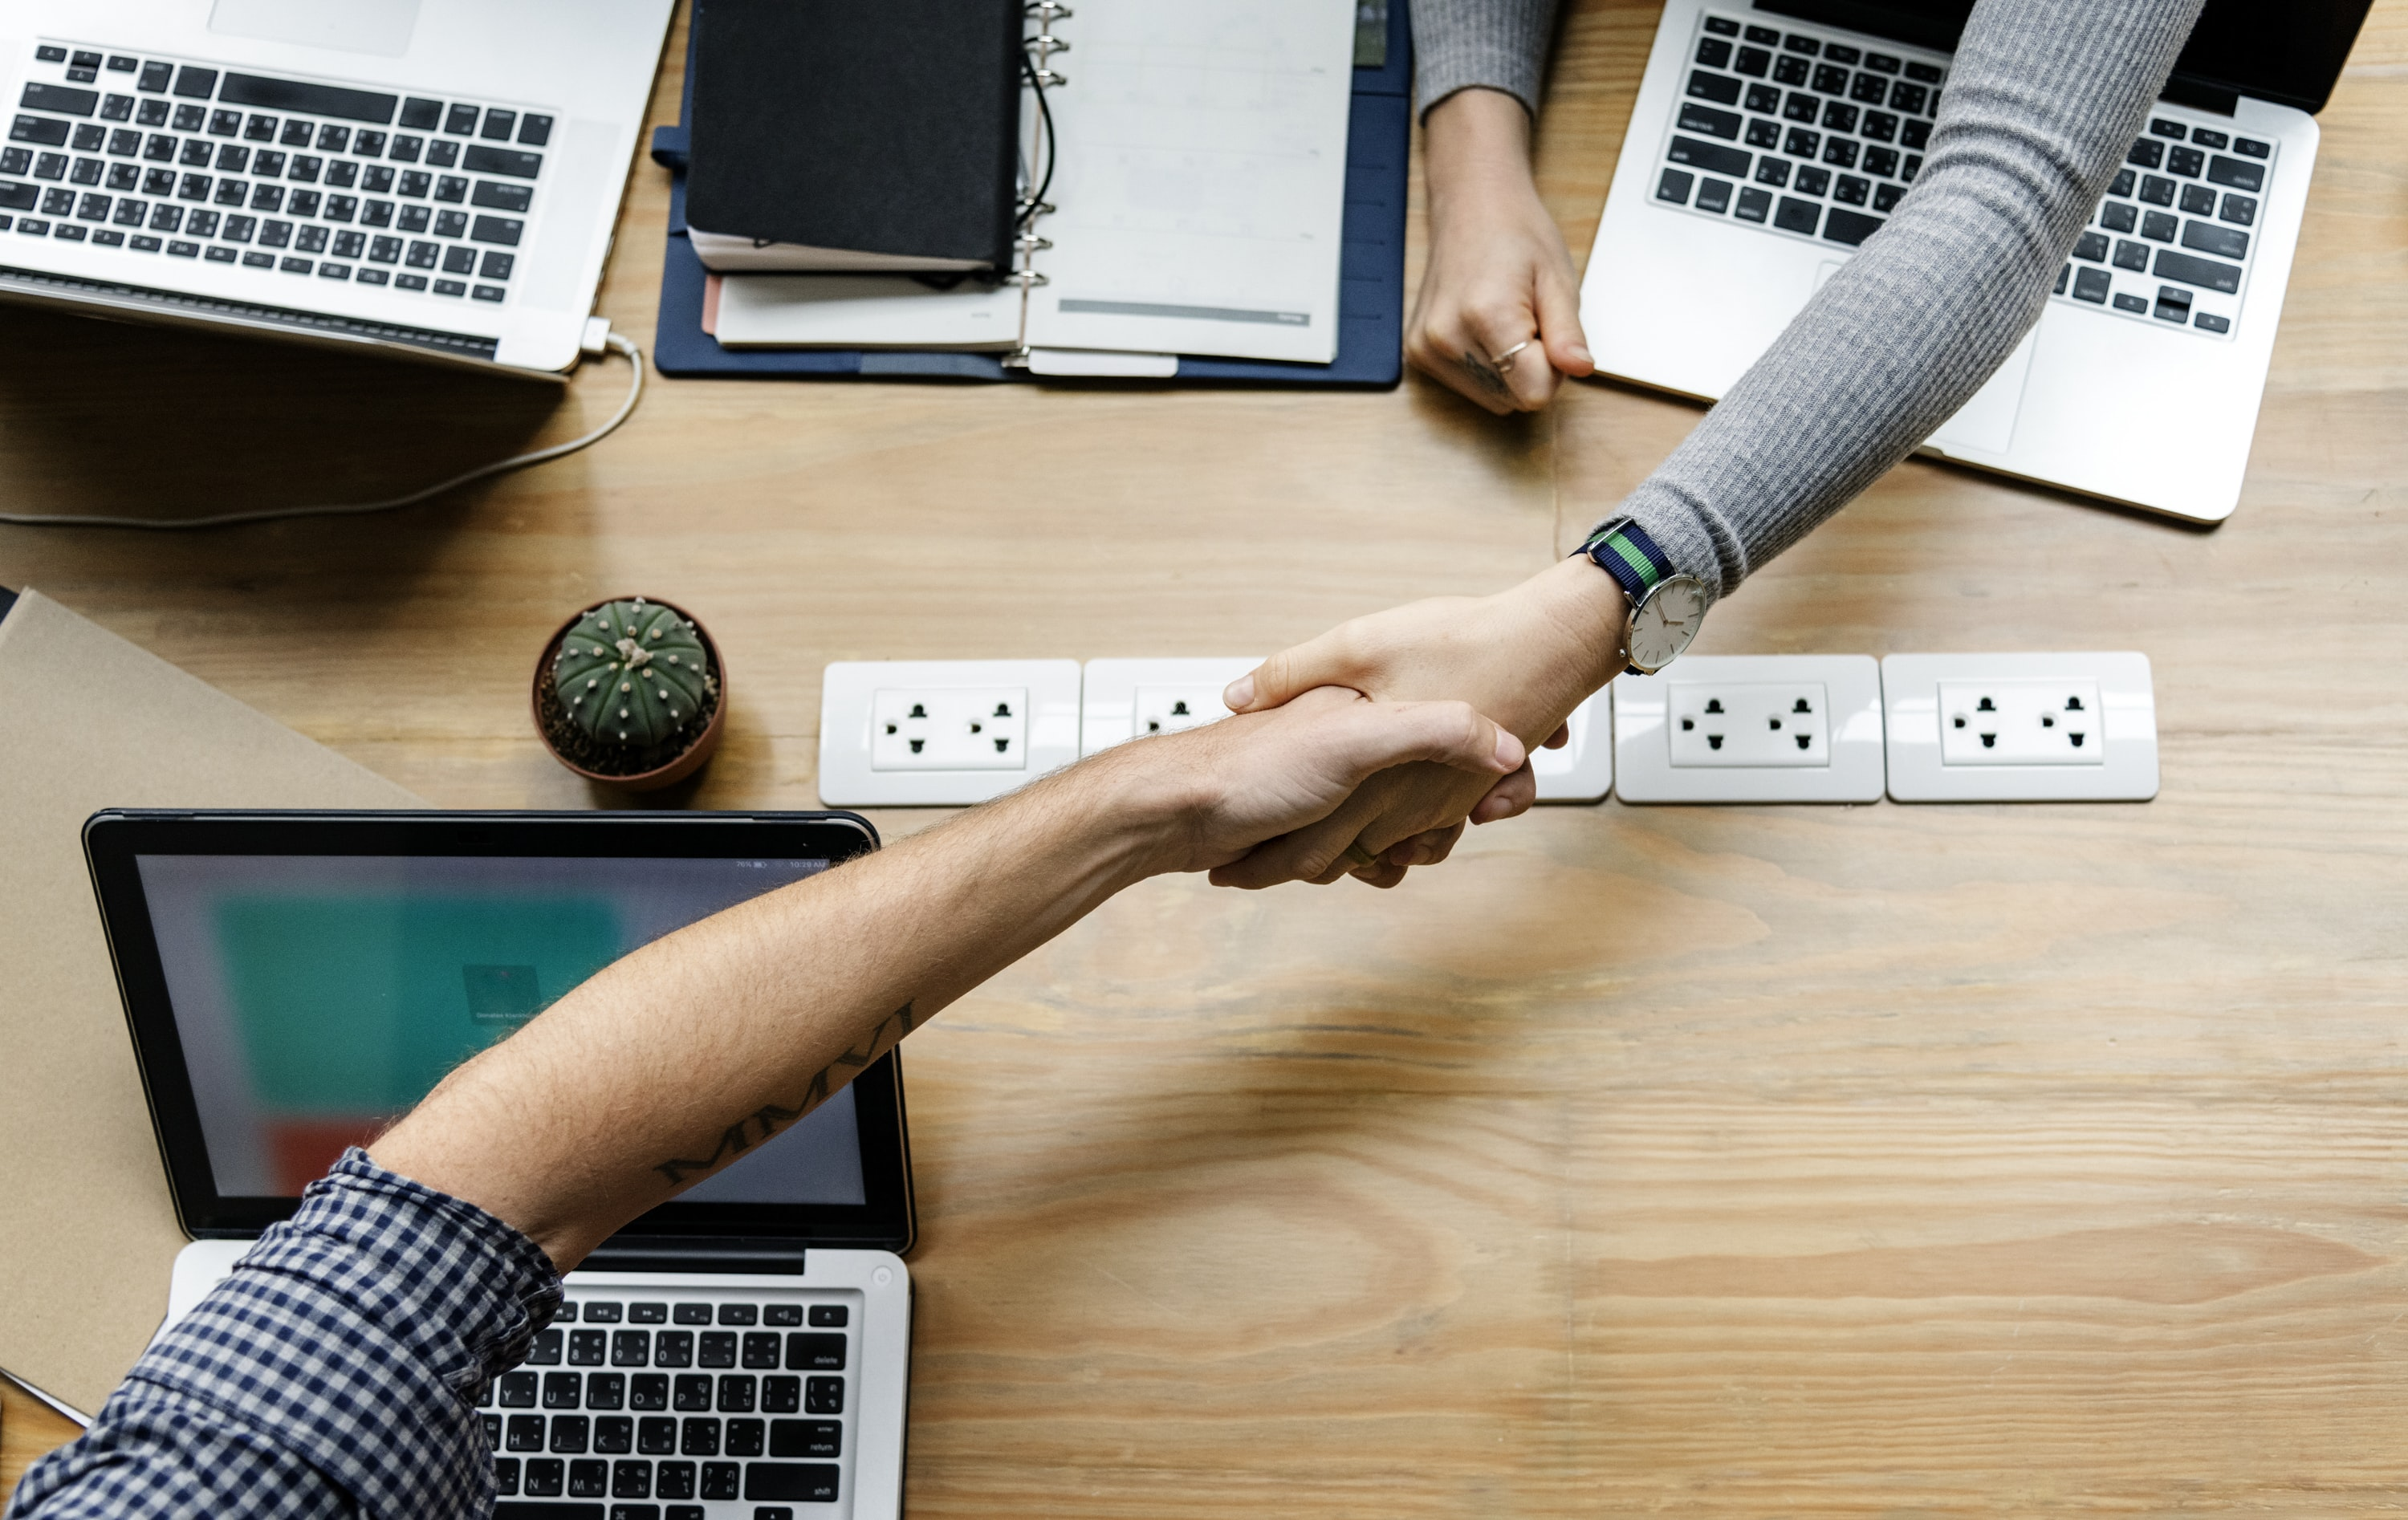 two person handshaking in front of MacBook Pro